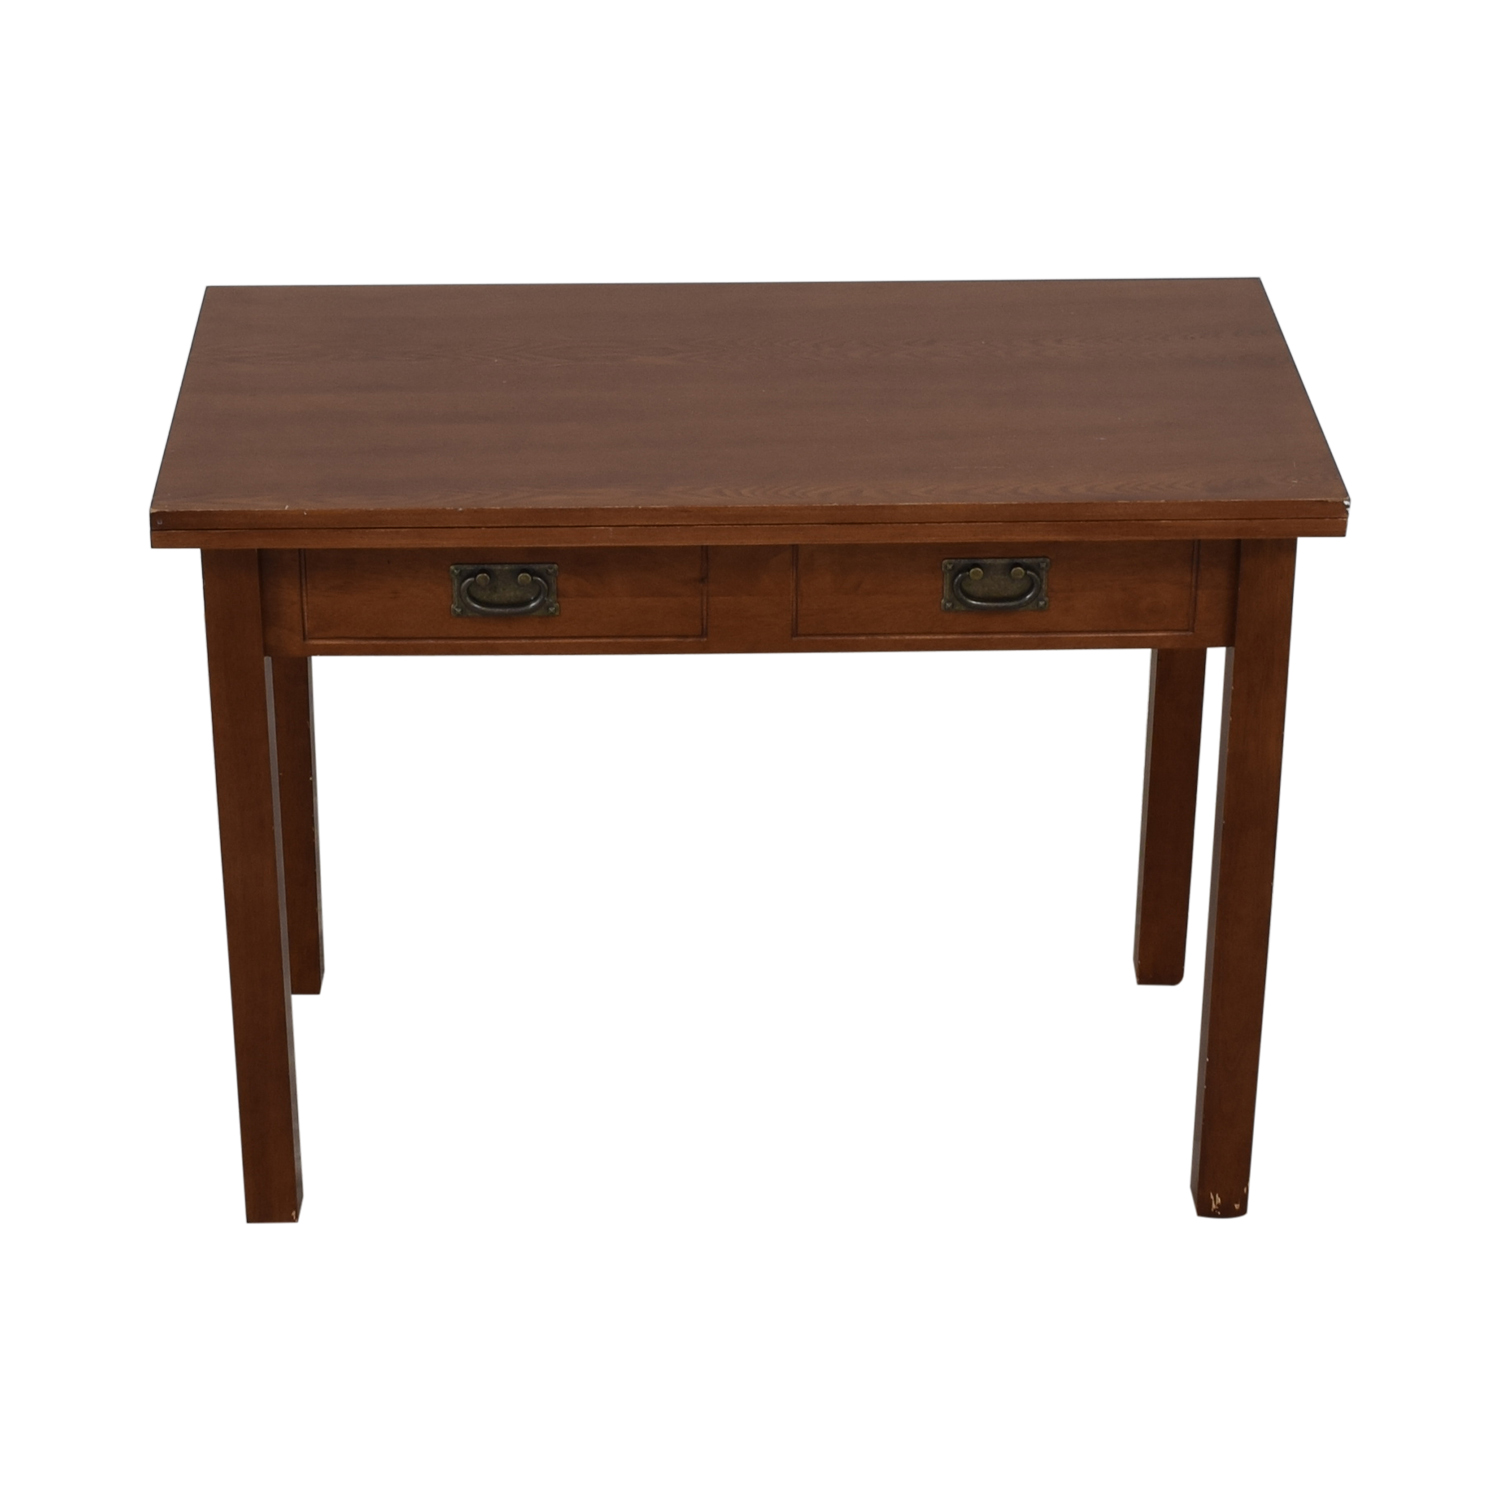 Extendable Table with Drawers dimensions